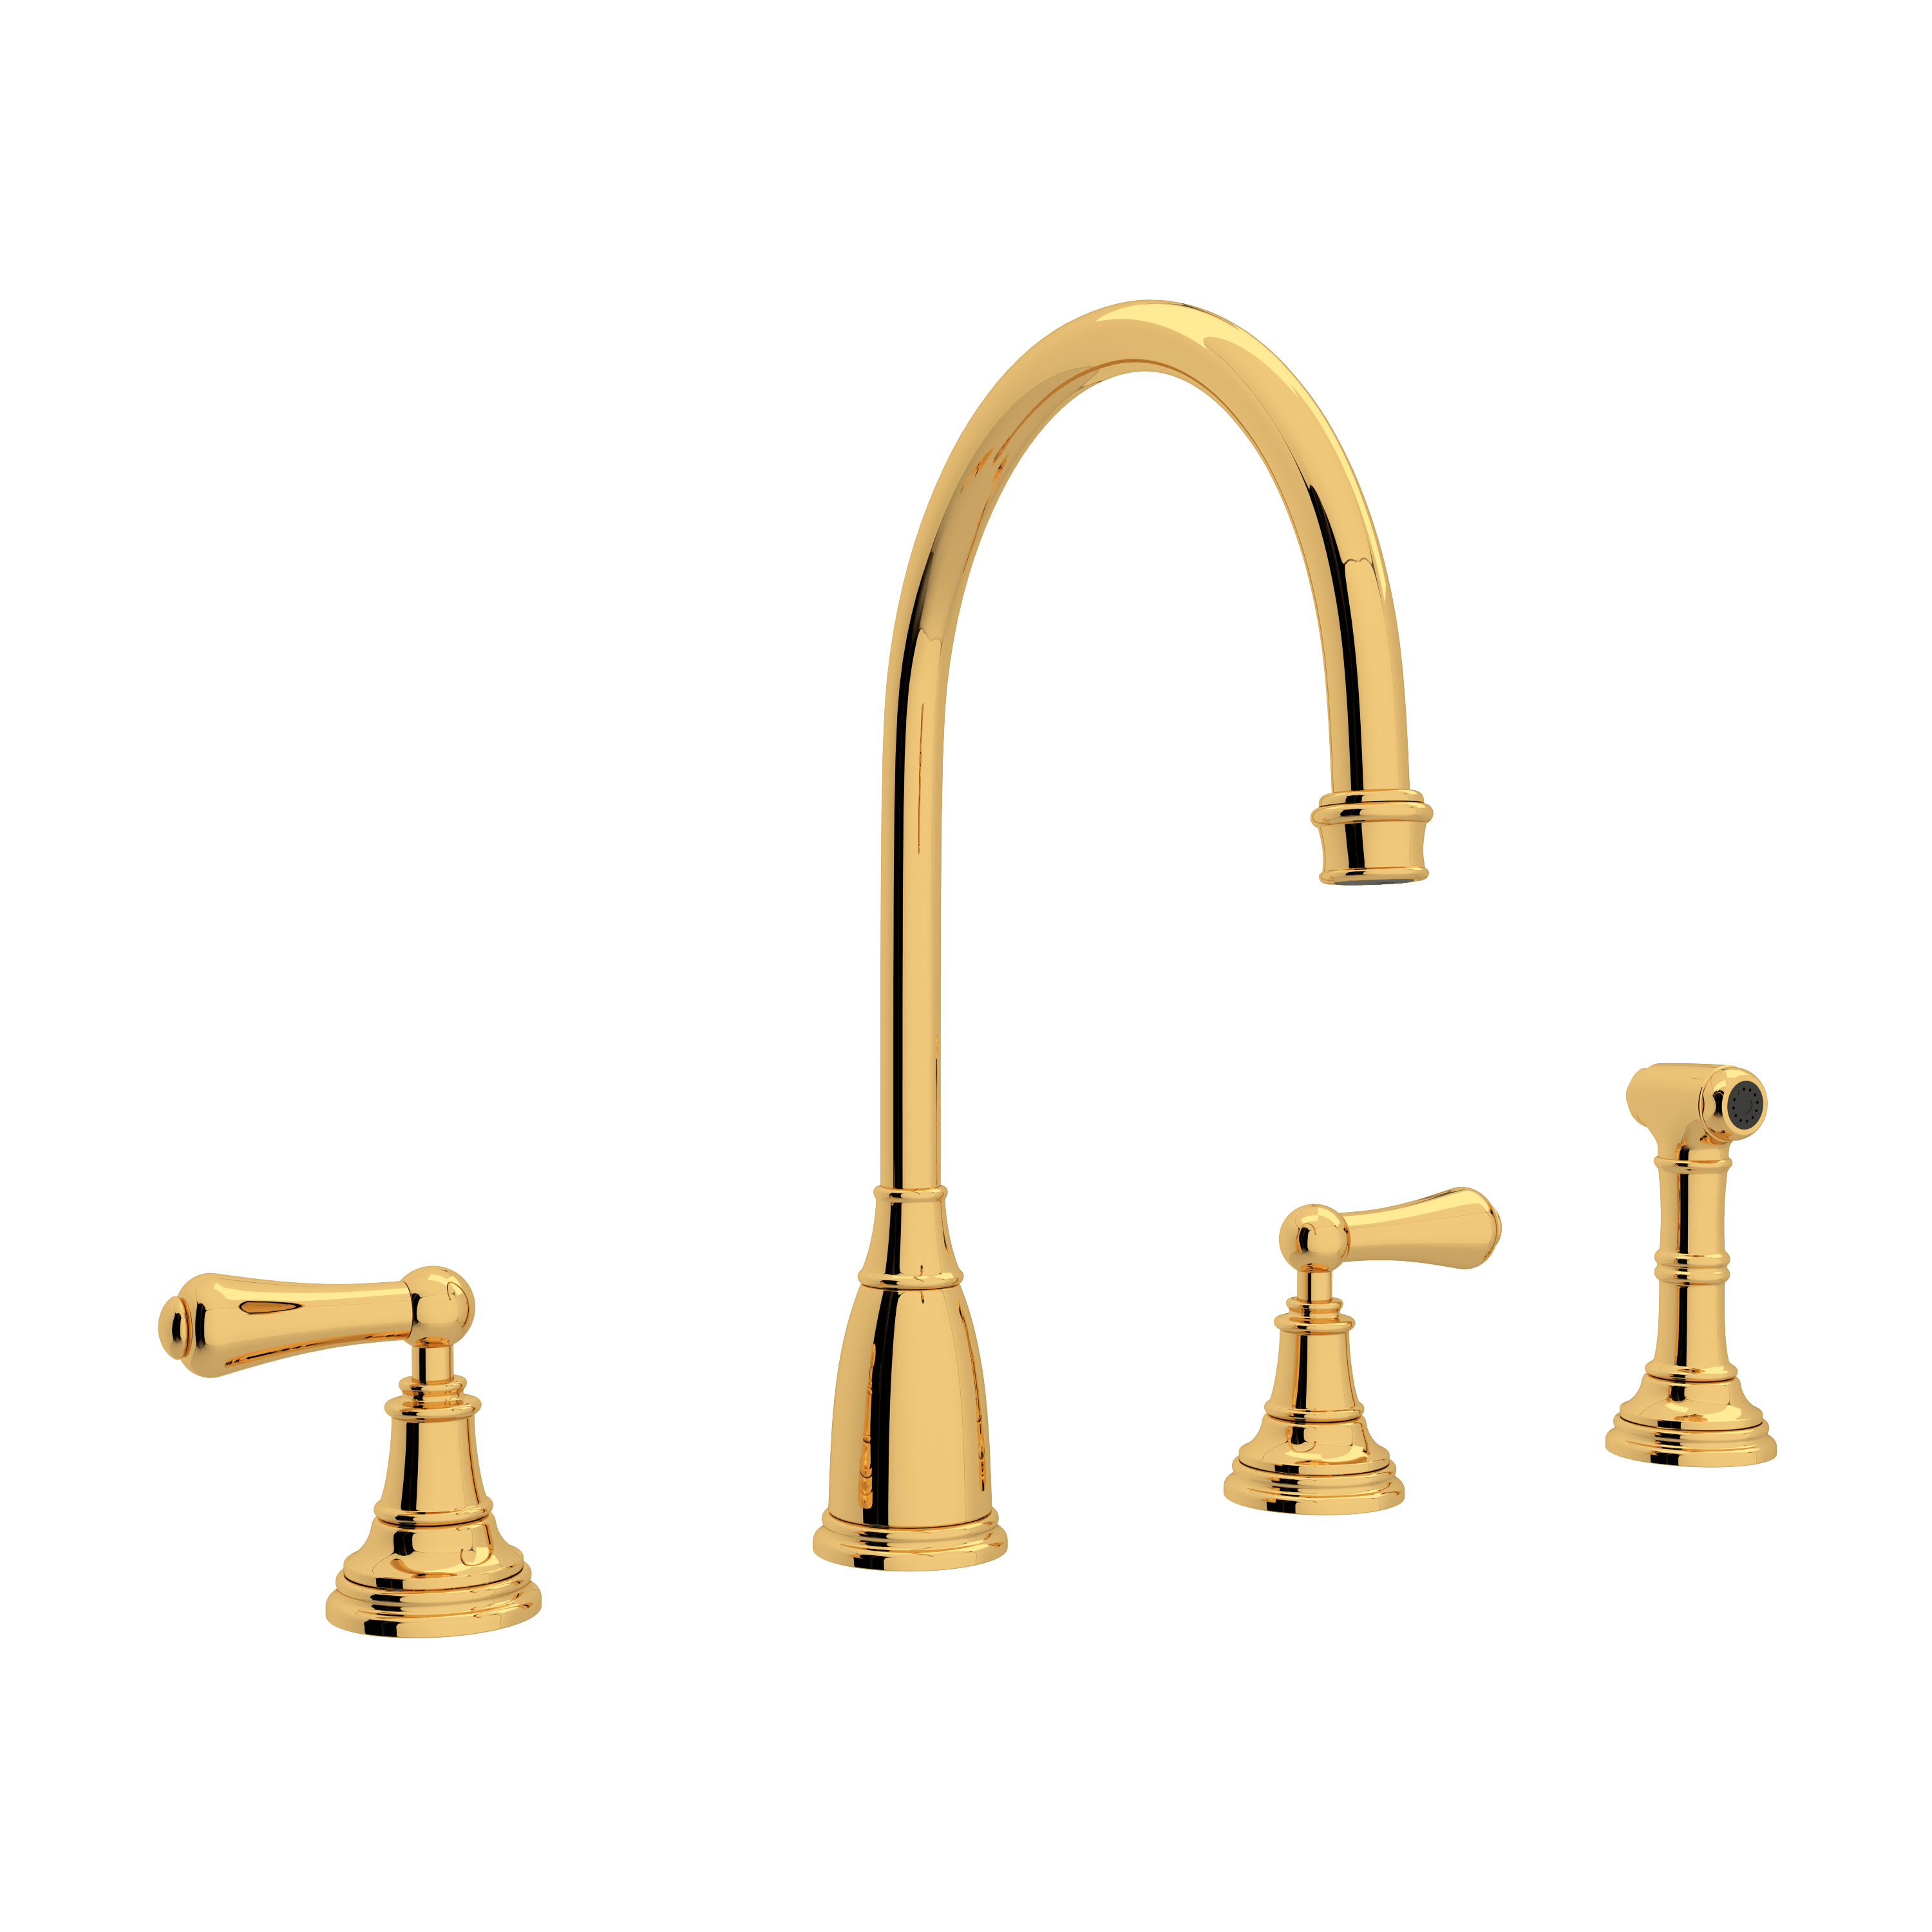 Inca Brass Trumbull Industries Rohl 9.01456H-IB Perrin /& Rowe 3//4 Crosstop Handle Only with Hot Indicator